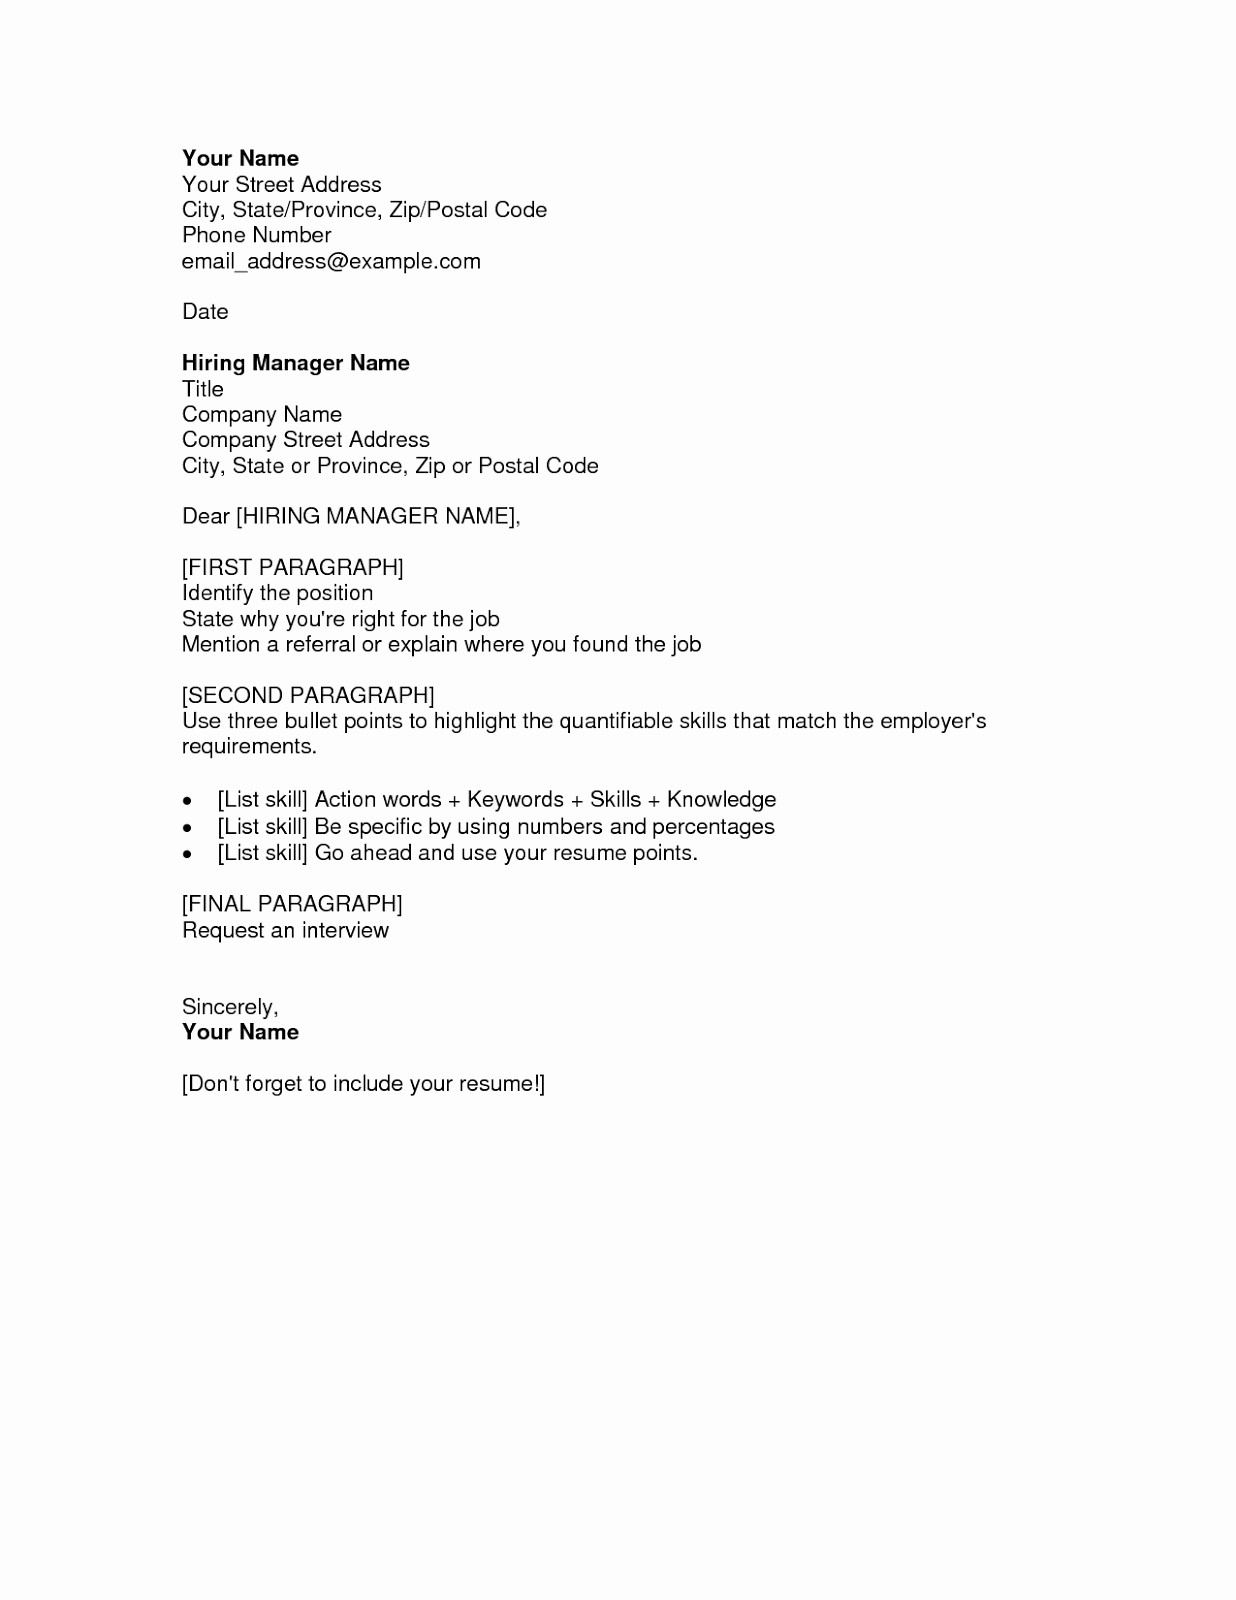 Resume Cover Letter Template Free Luxury Free Cover Letter Samples for Resumes